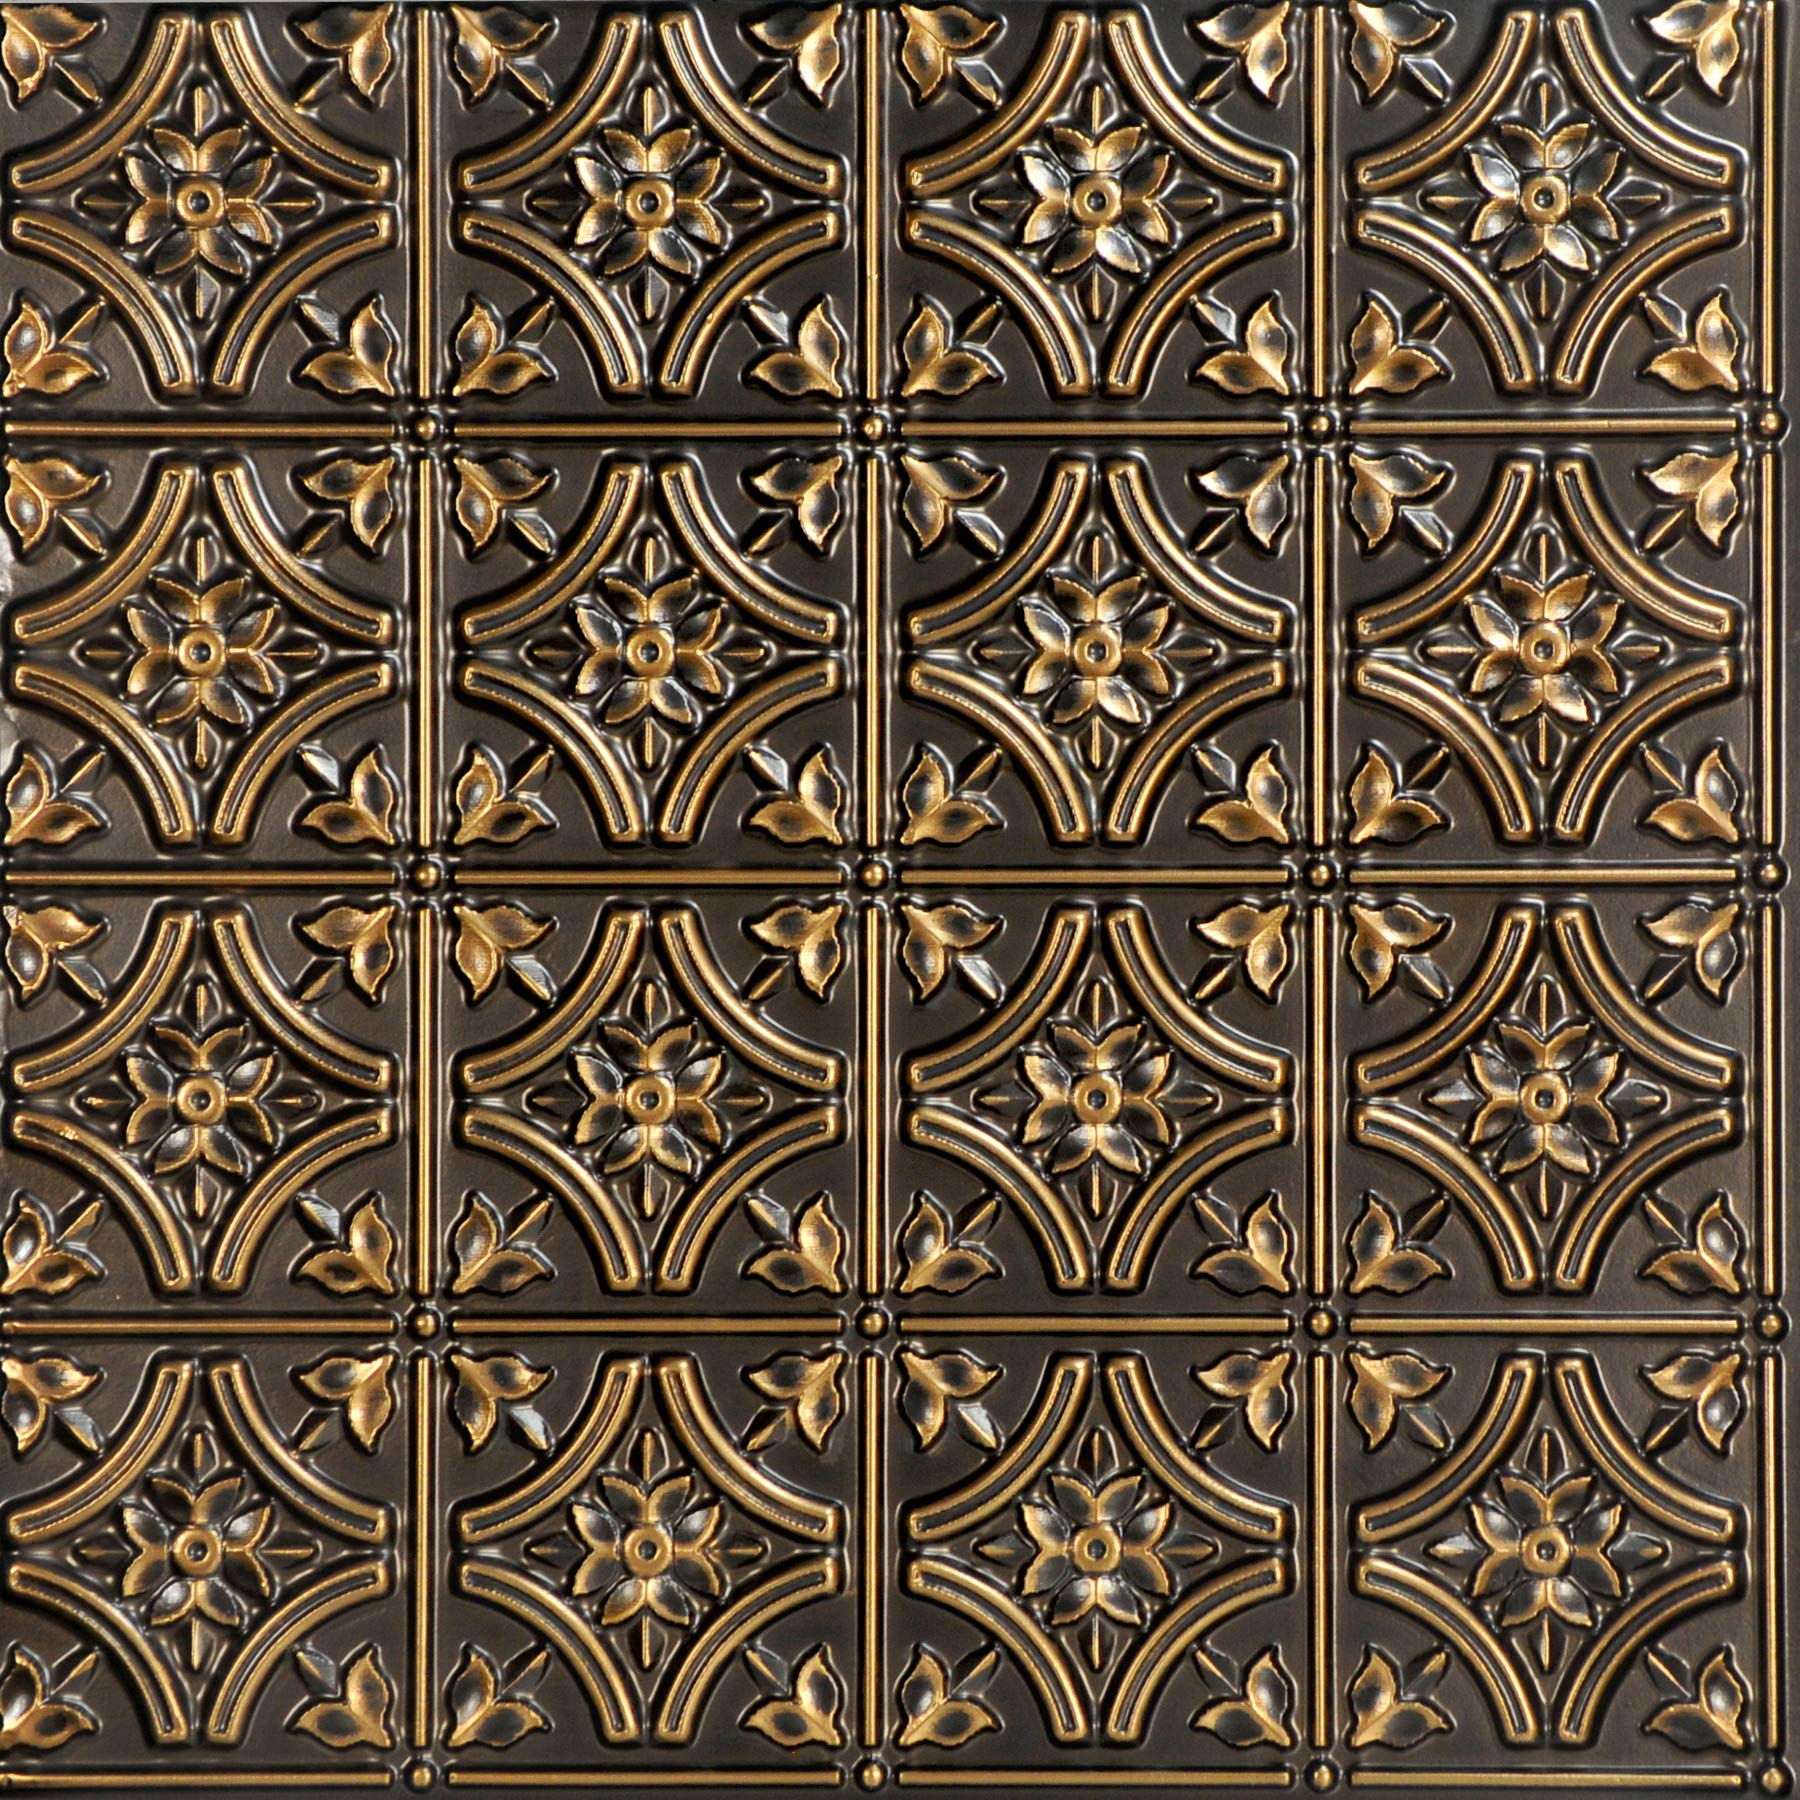 From Plain To Beautiful In Hours 150ag-24x24-25 Gothic Reams Ceiling Tile Antique Gold 25